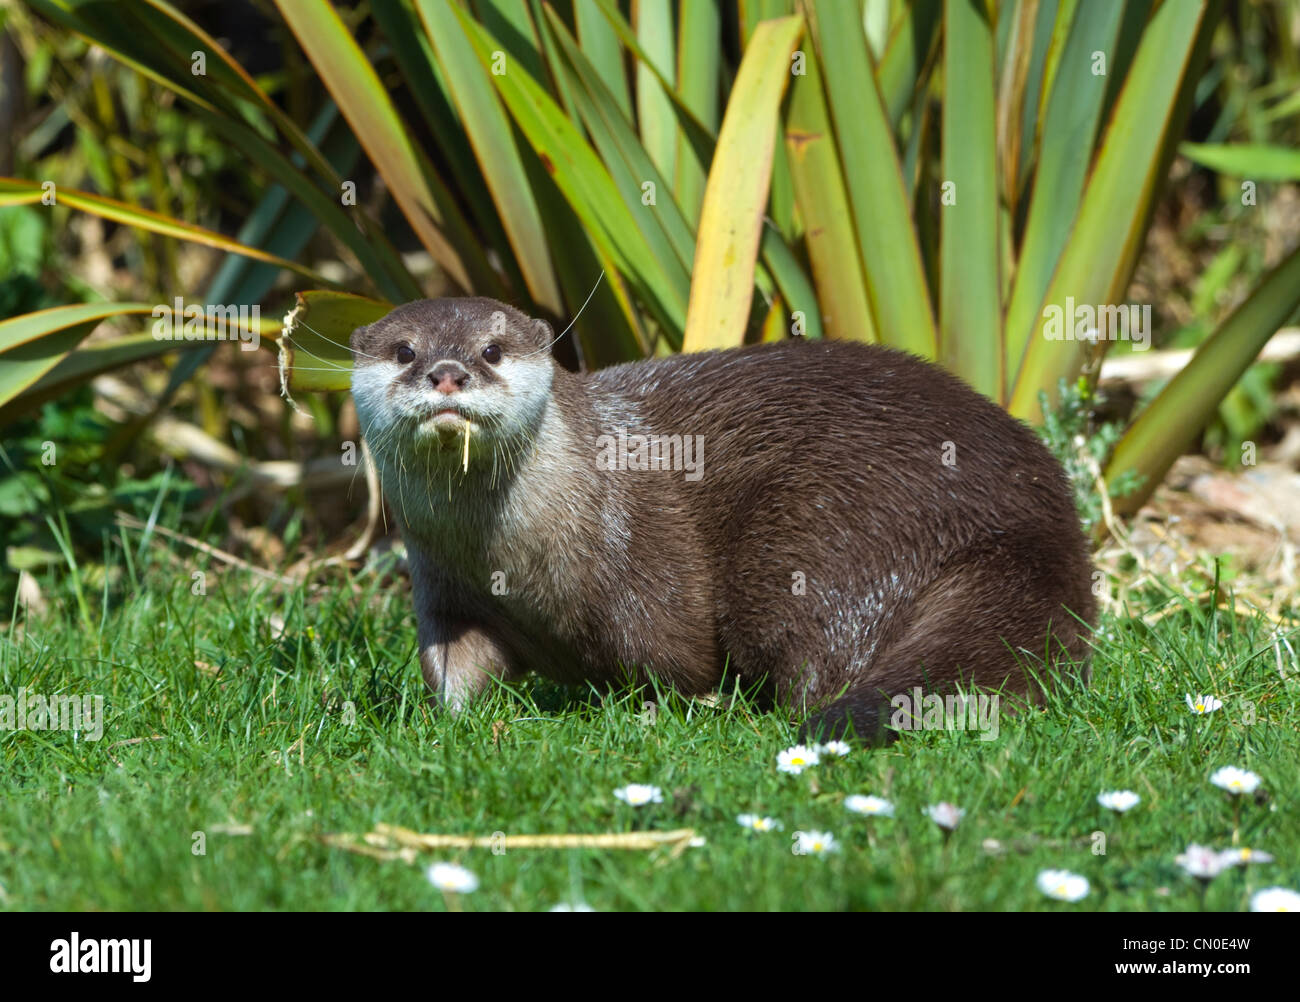 why the asian small clawed otter The asian short clawed otter is the smallest of all the otter species its name comes from the very small claws on its fingers, they rely on their sensitive and dexterous fingers to forage for their prey, and so do not have the long claws which most otters have.